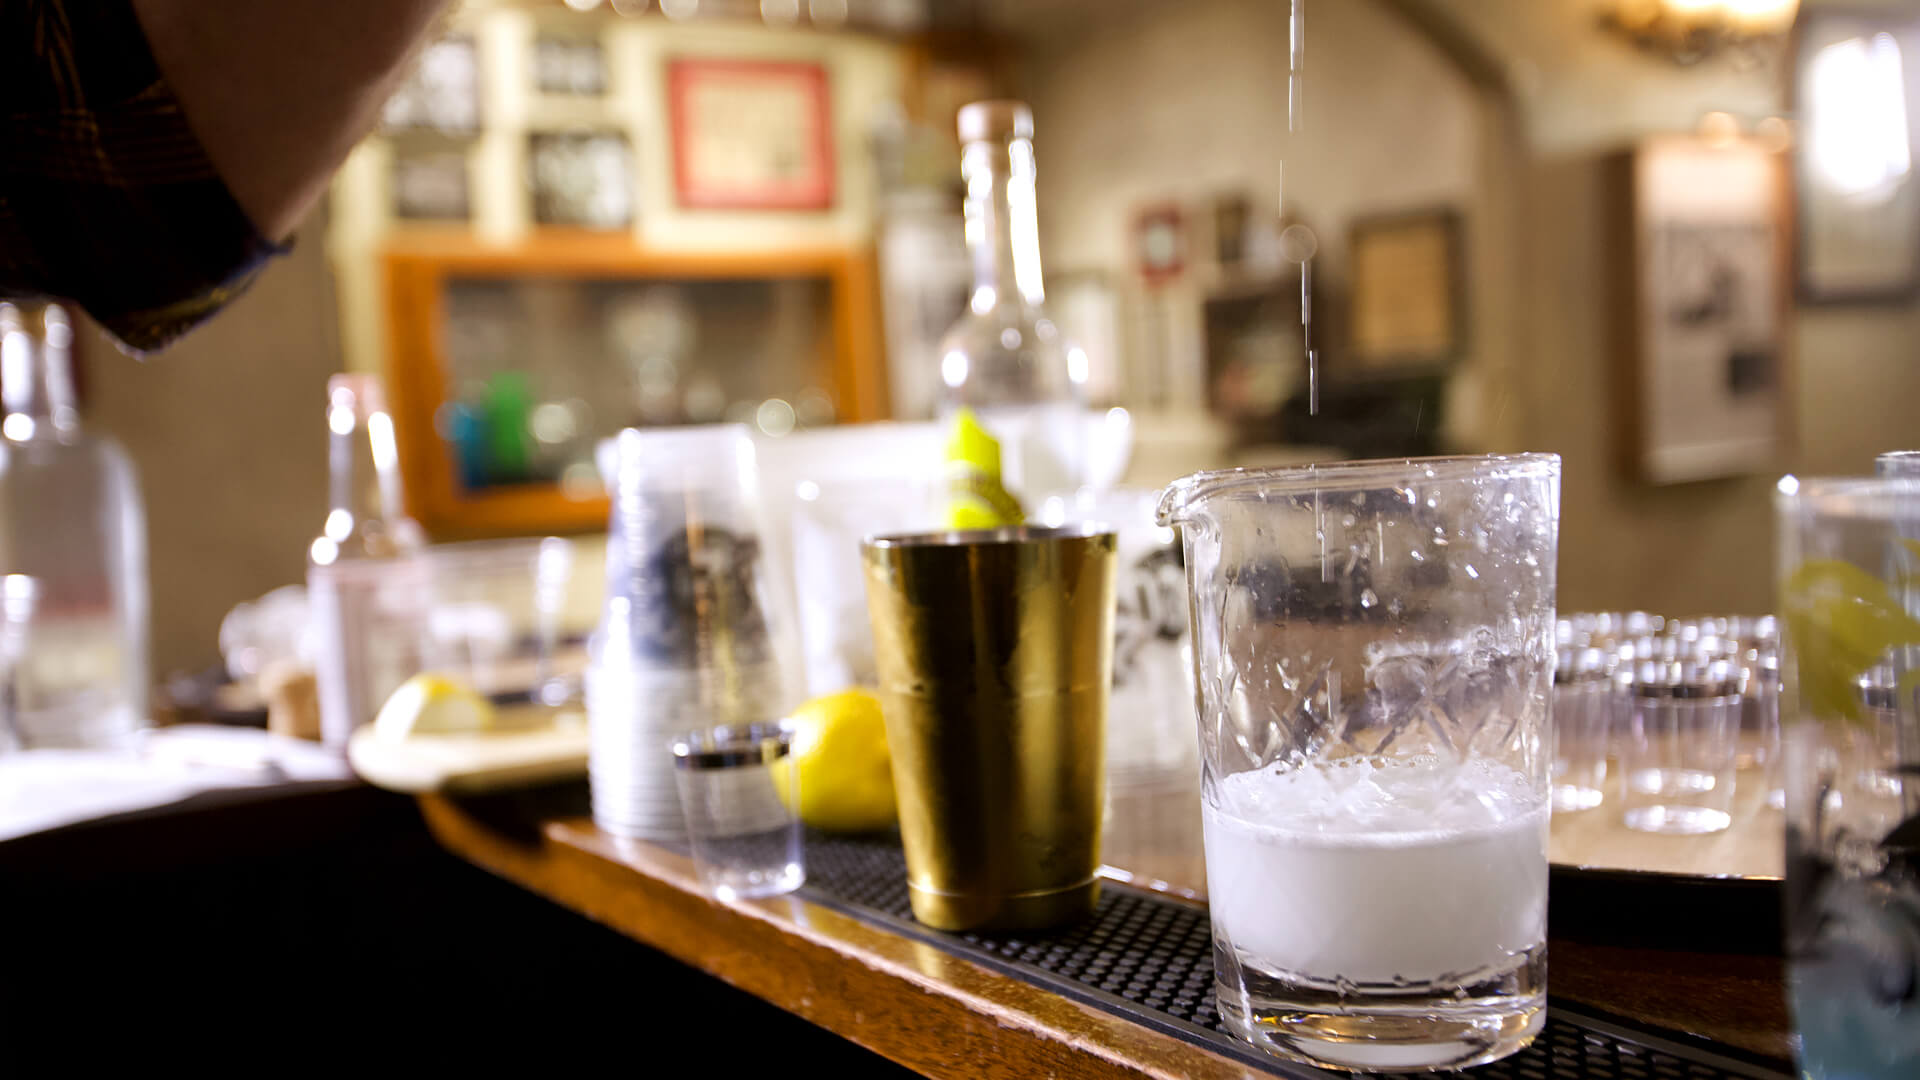 Prohibition style cocktails lined up for class to learn at Savannah Speakeasy